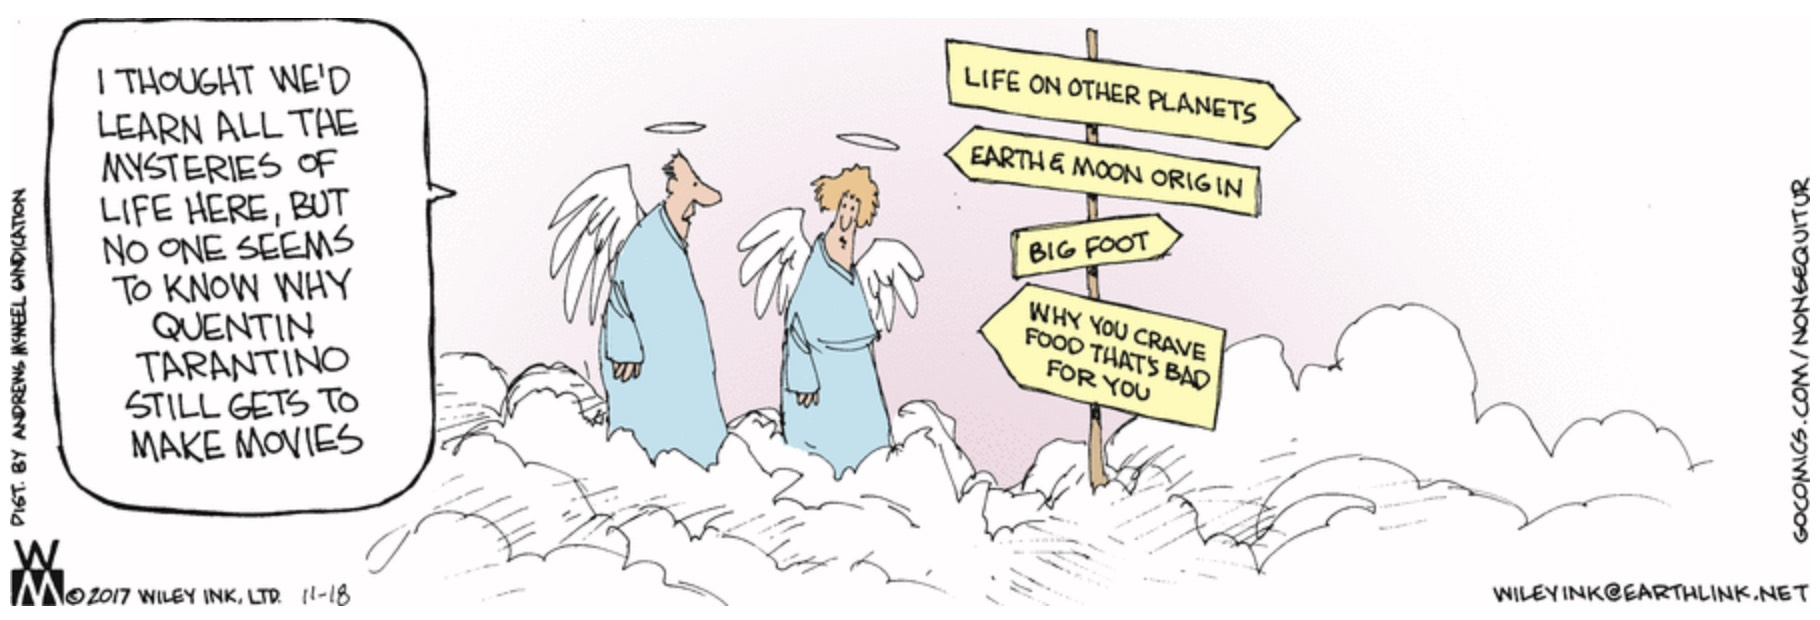 Non Sequitur Mysteries of Life